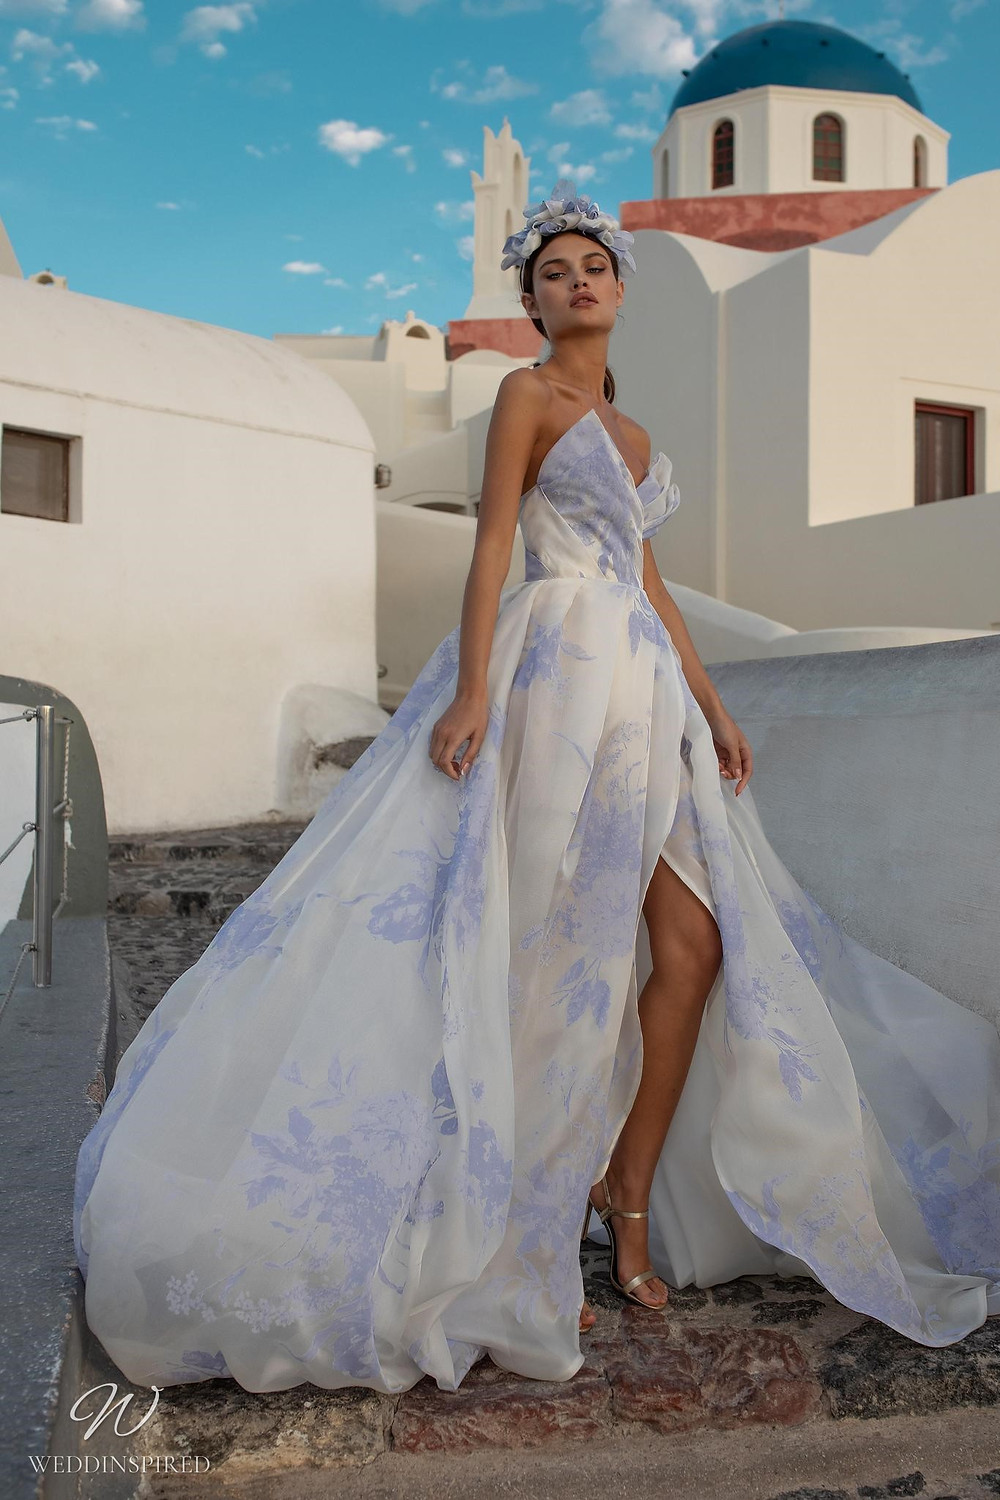 A Ricca Sposa strapless chiffon ball gown wedding dress with blue flowers and a high slit